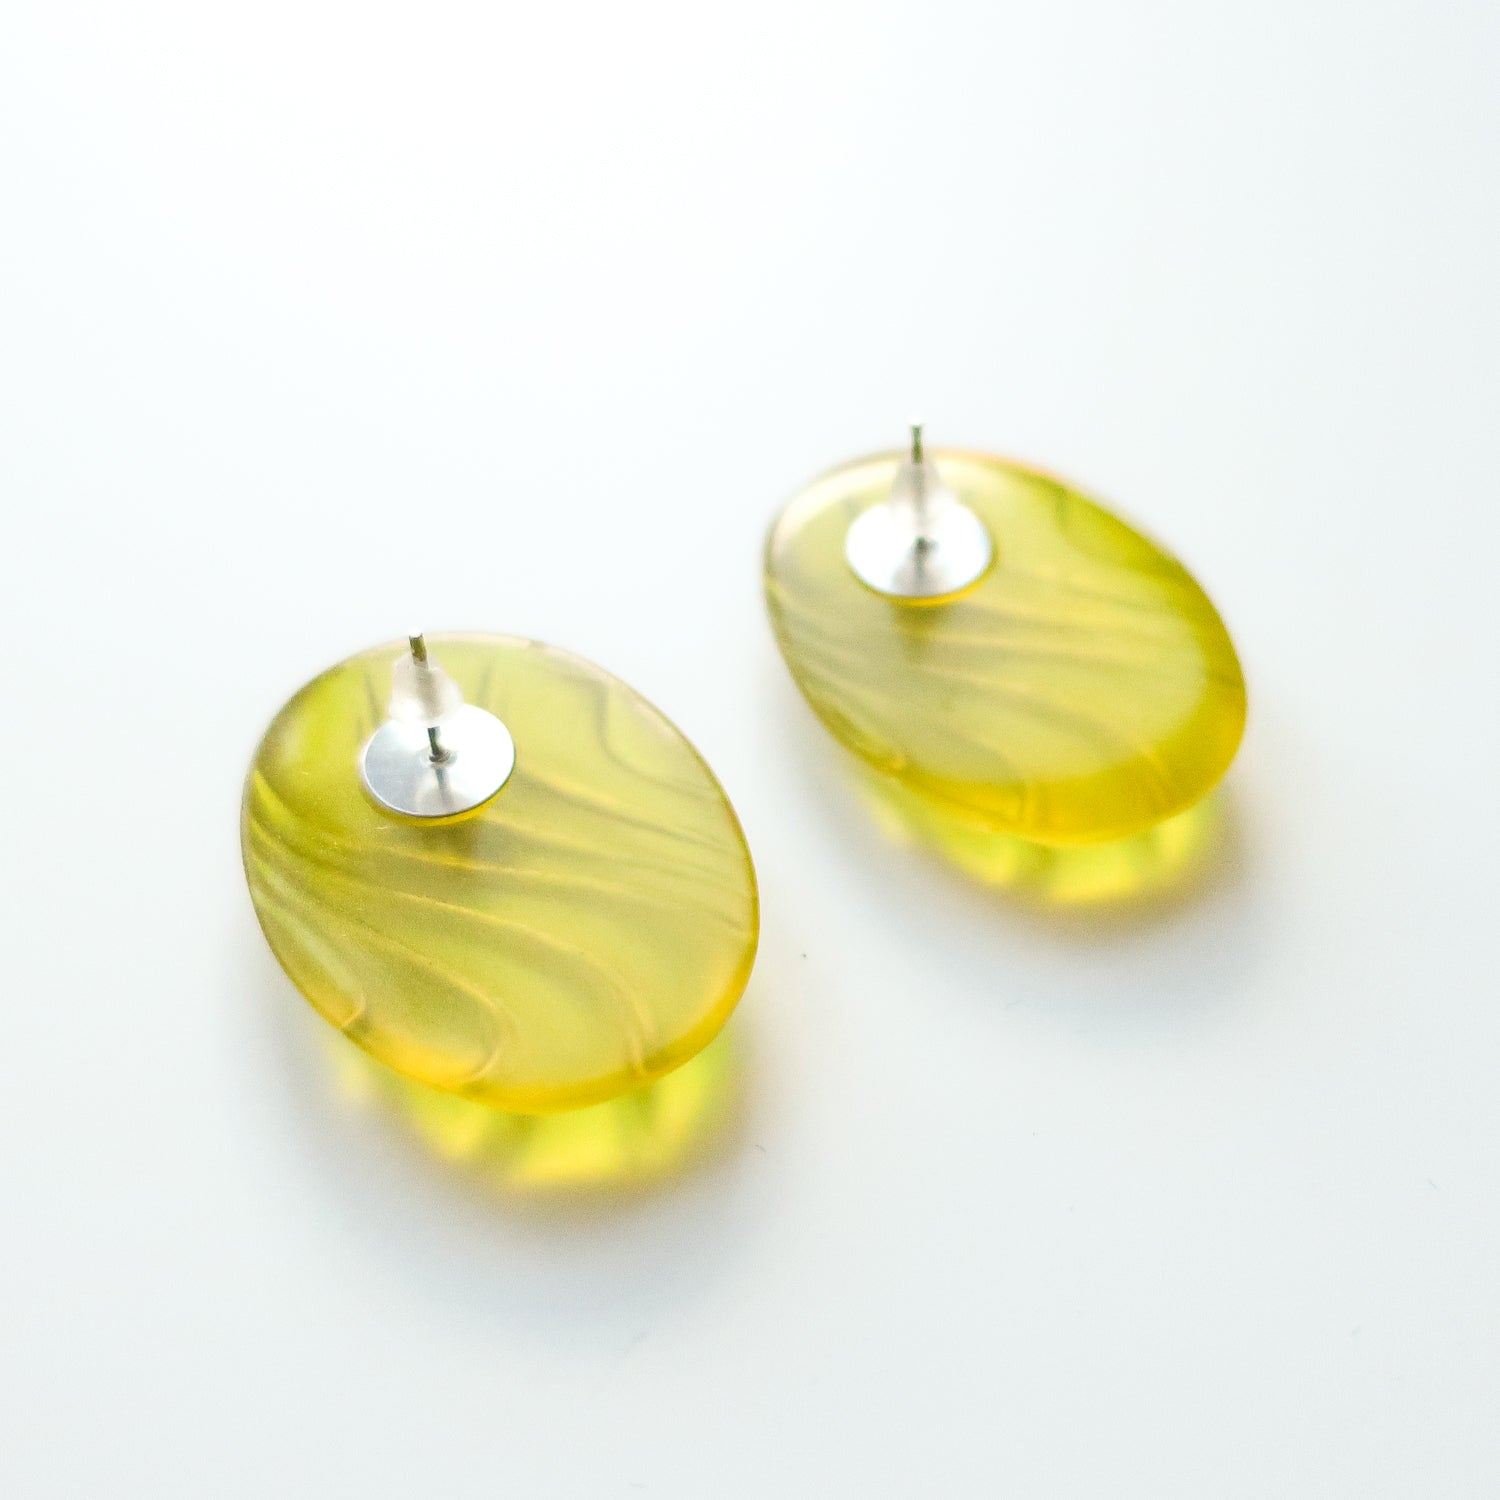 "Vintage clear green acrylic stud earrings with wavy pattern. Earrings are 1"" wide and 1.25"" tall. Original earring backs have been replaced with new, clear silicone backings."